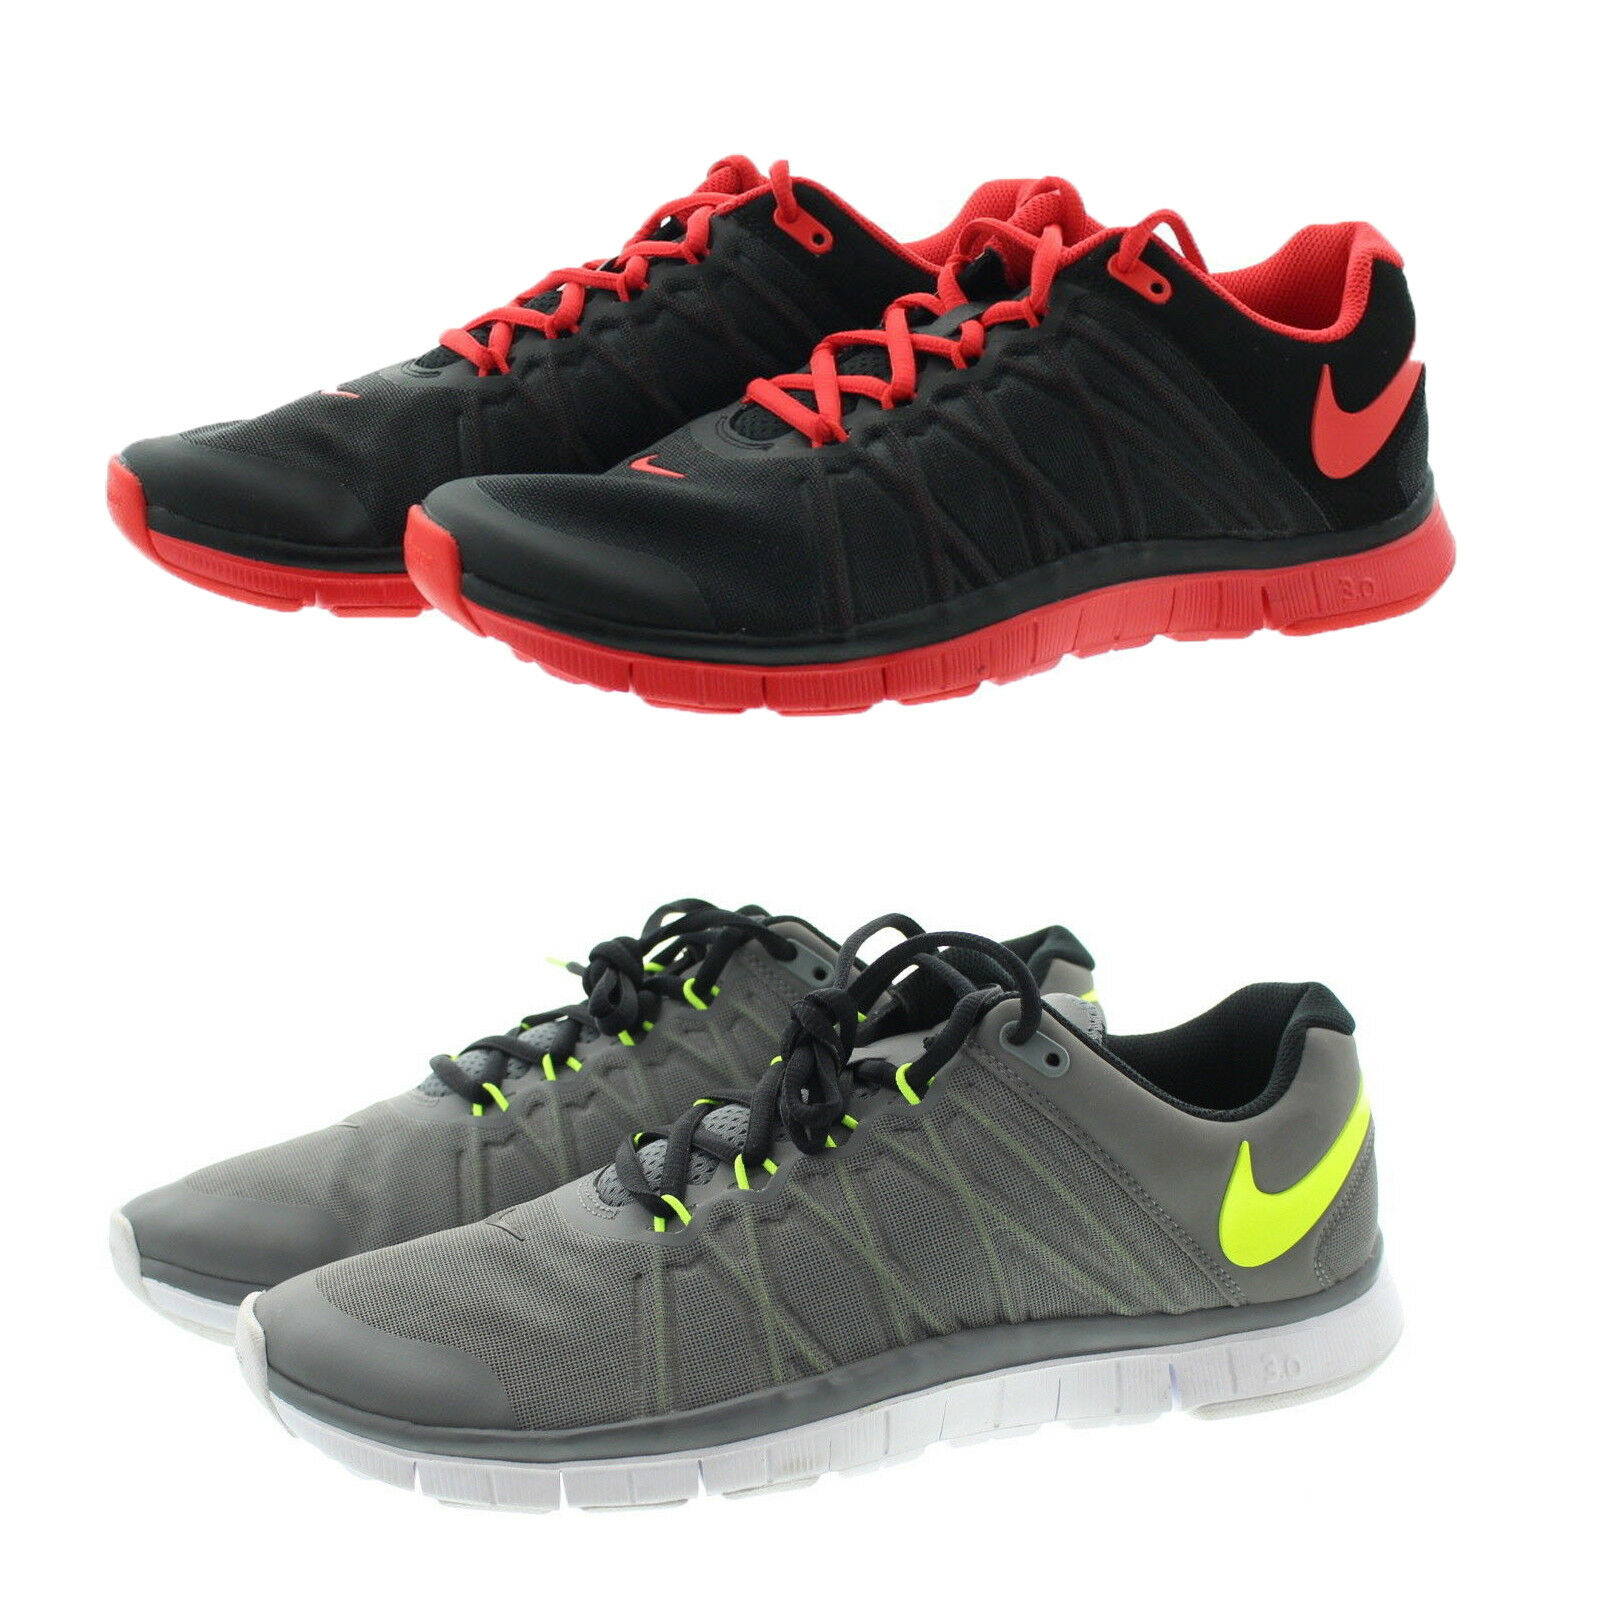 Nike 630856 Mens Free Trainer 3.0 Running Training Low Top Shoes Sneakers